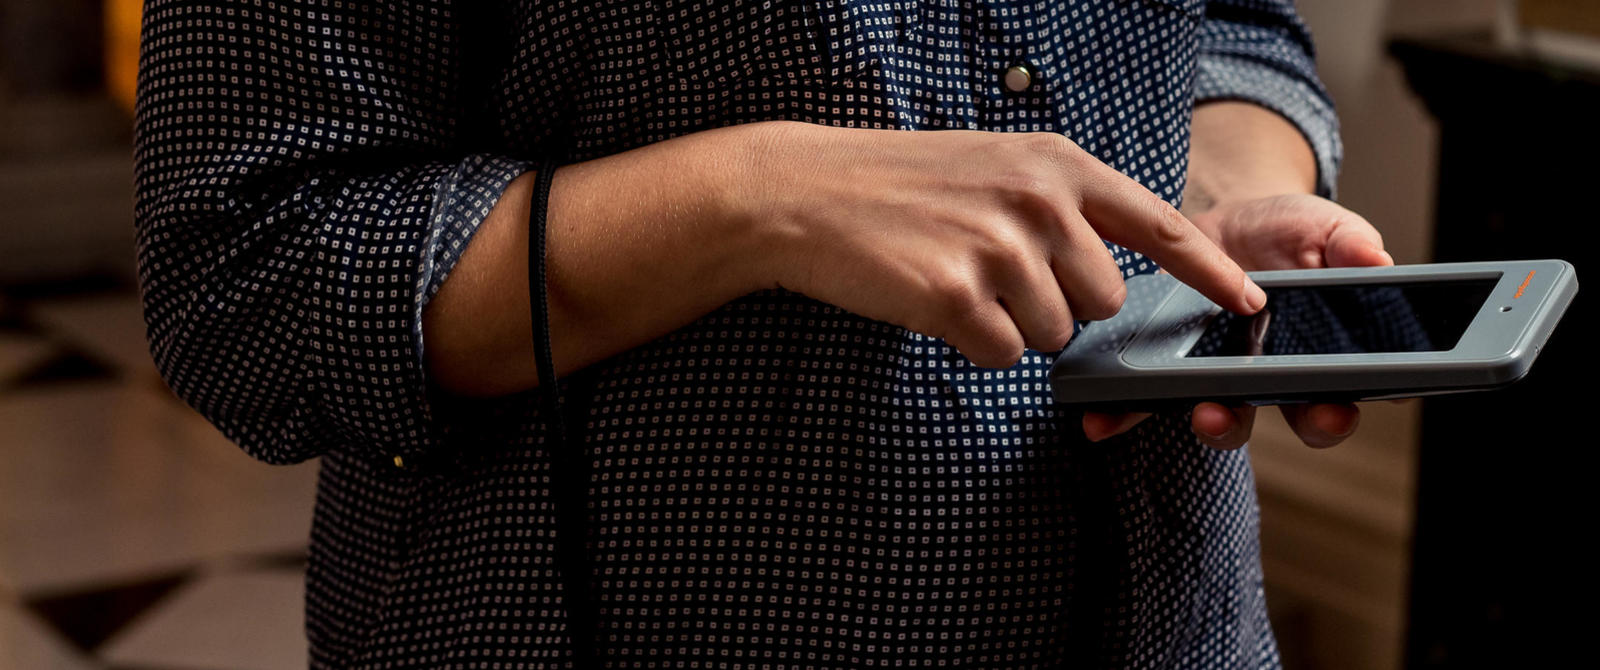 Image: Visitor using a handheld device